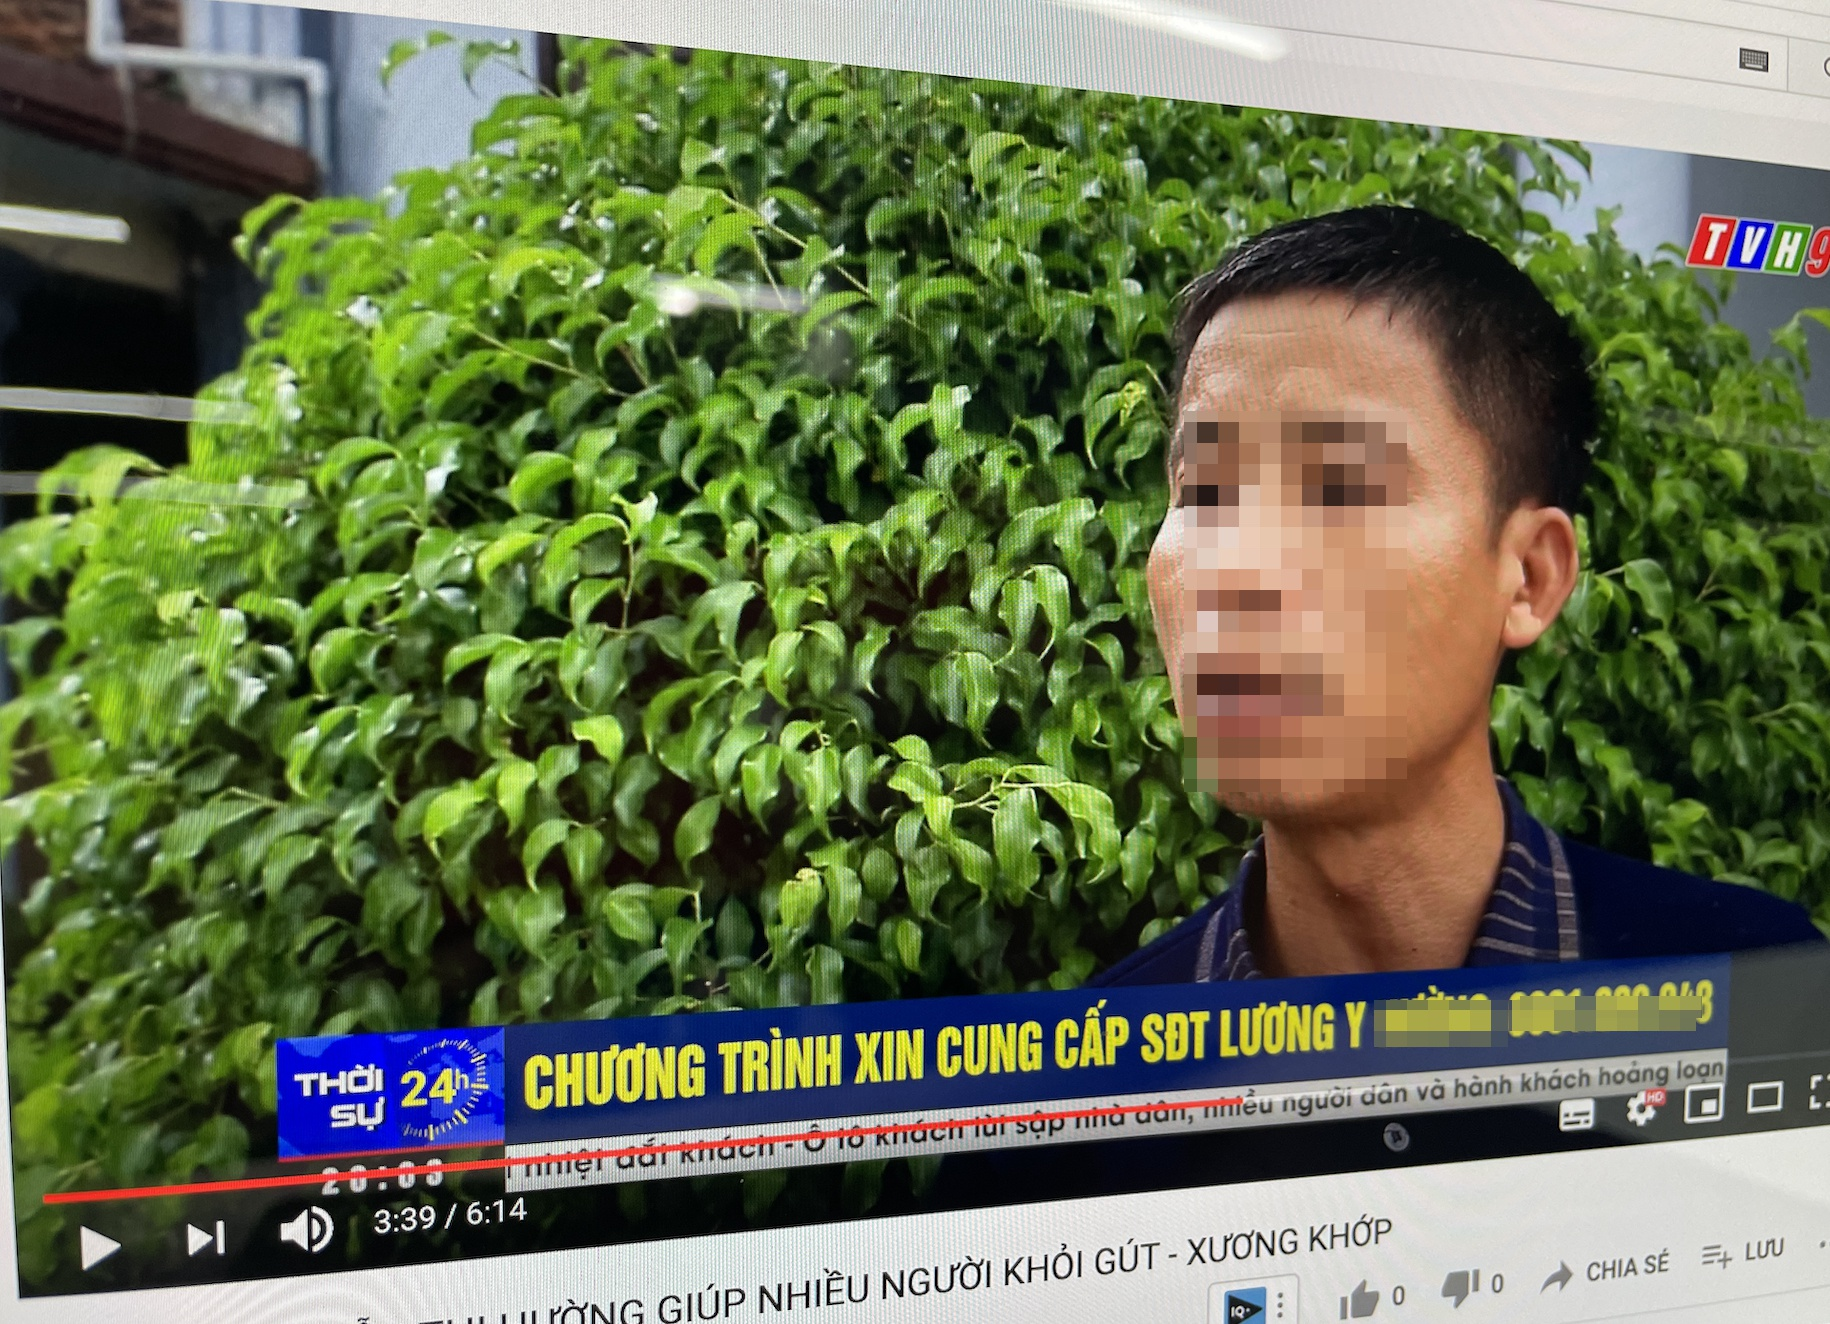 quang cao dong y youtube anh 3